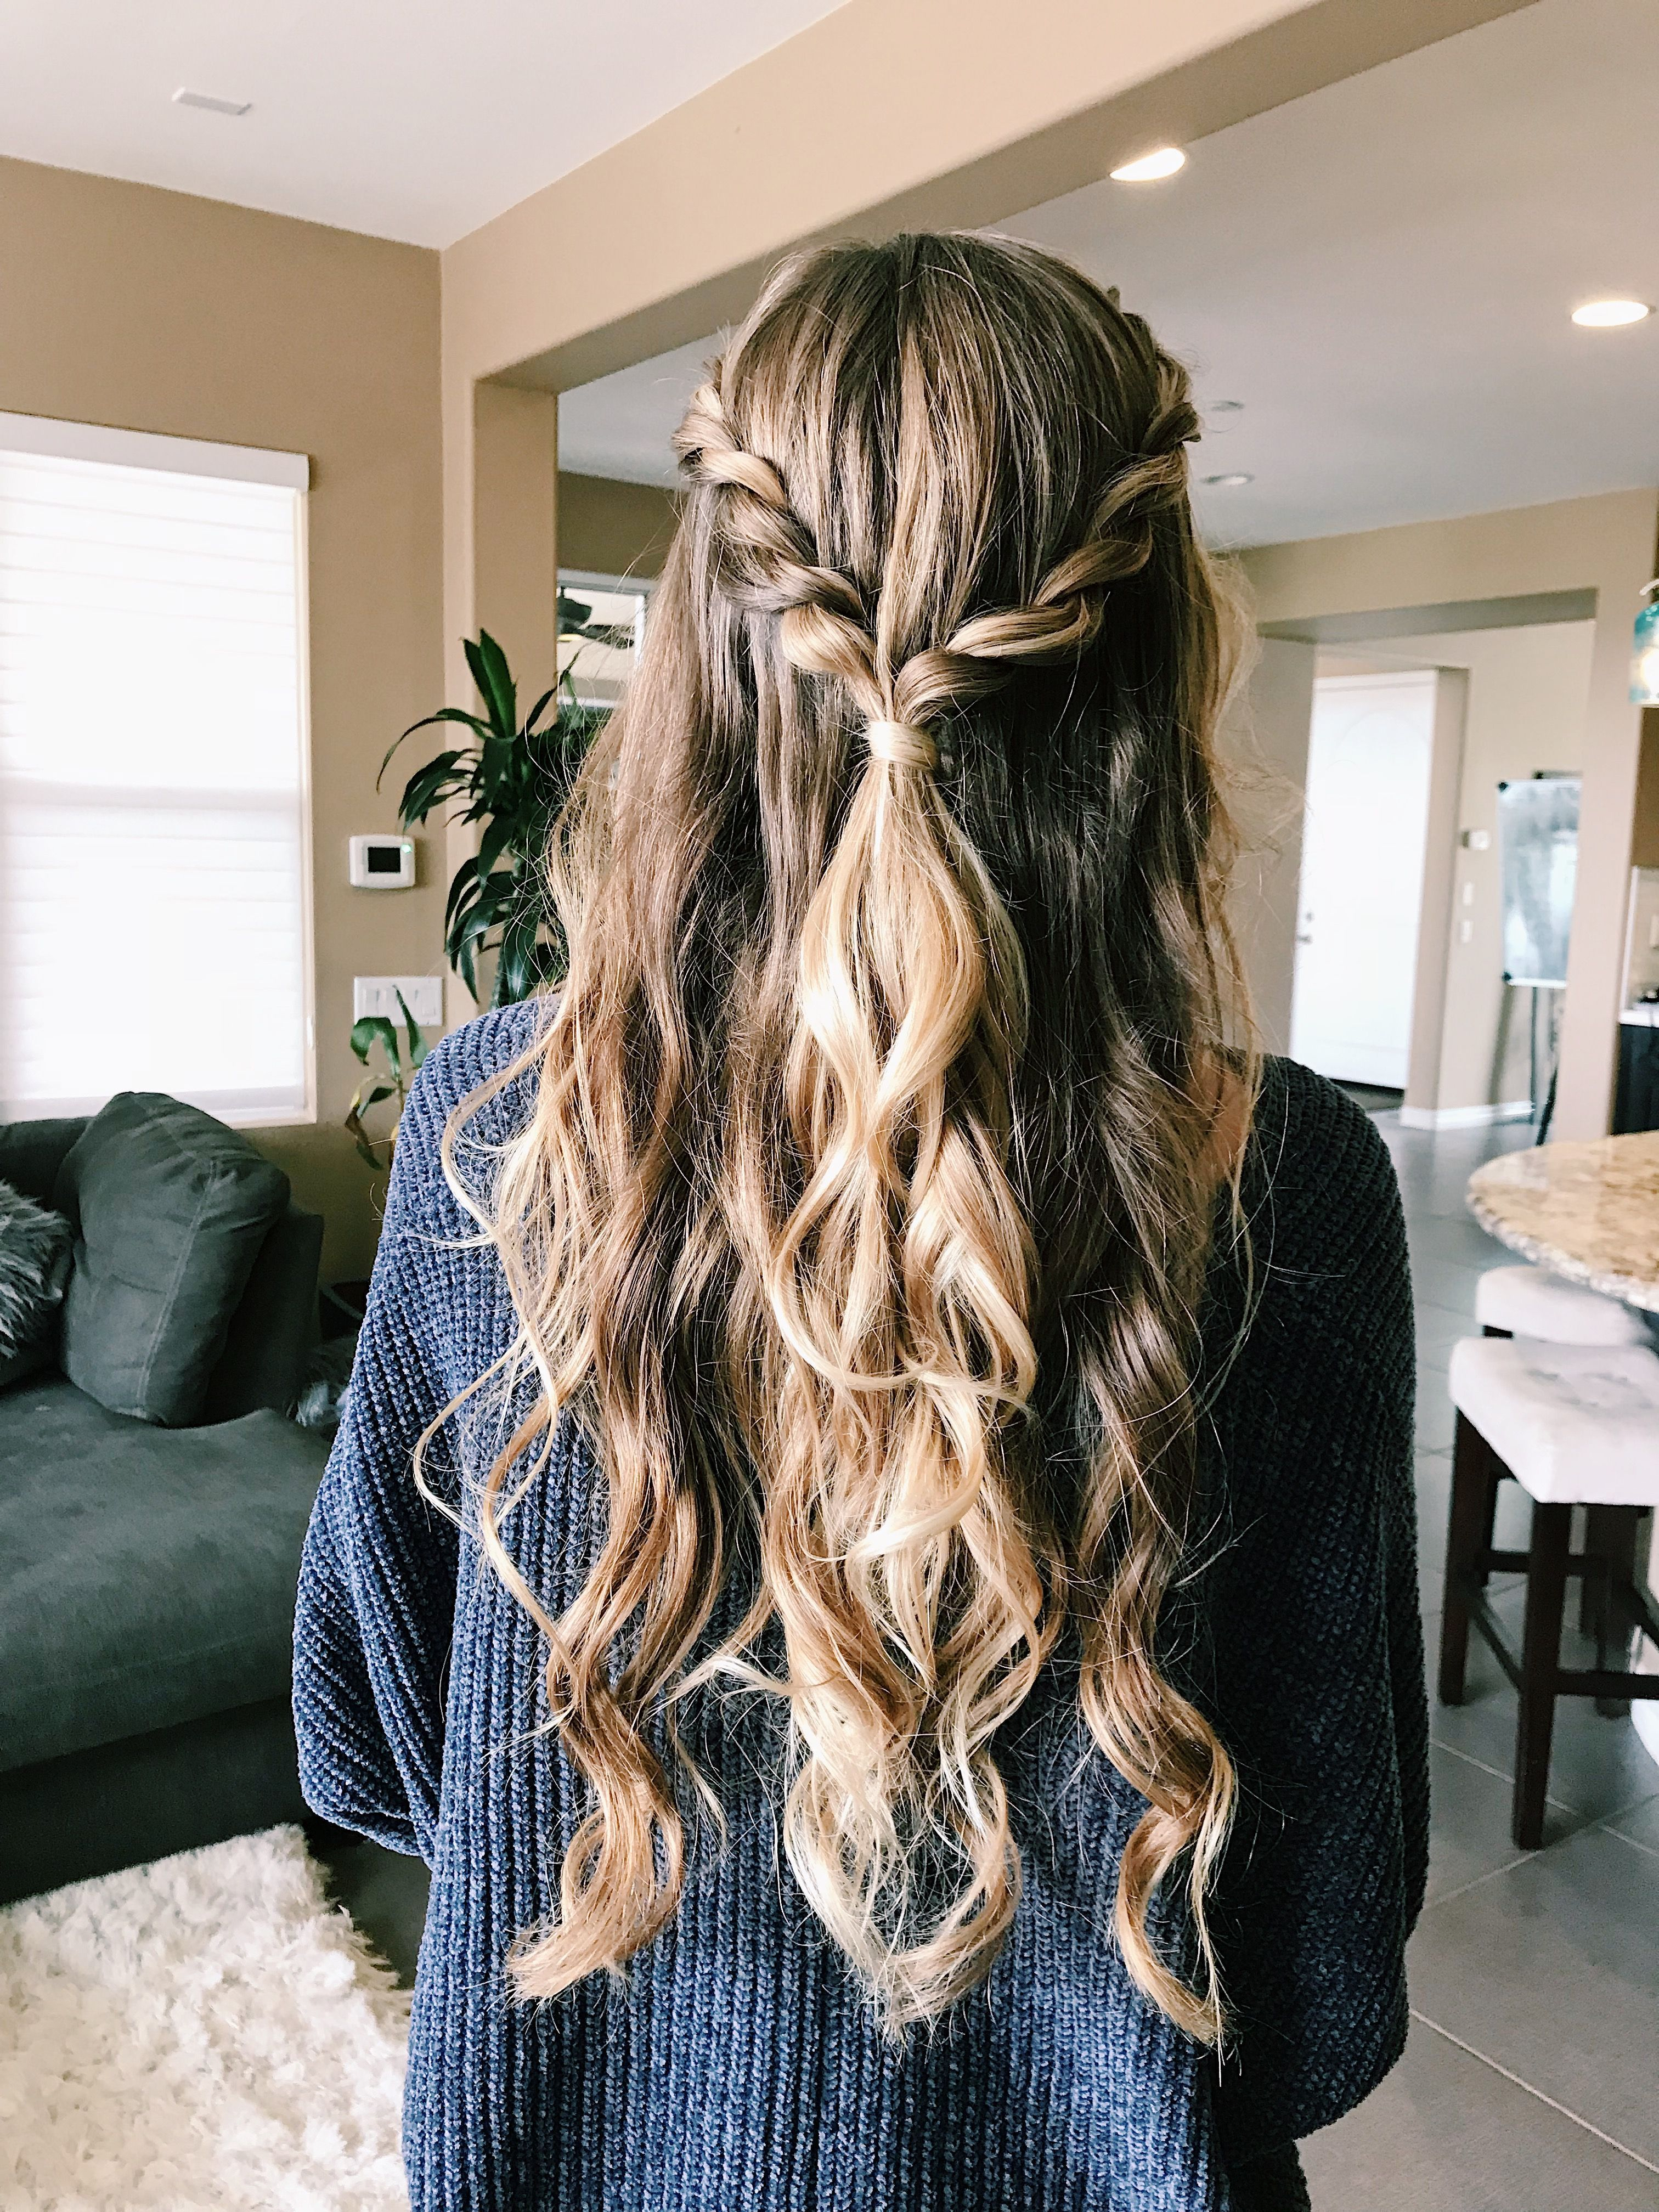 Best Cost-Free Homecoming Hairstyles vsco Tips Just about every lady ambitions for you to function as homecoming queen. To learn to dance the eveni #C... Best Cost-Free Homecoming Hairstyles vsco Tips Just about every lady ambitions for you to function as homecoming queen. To learn to dance the eveni #CostFree #Hairstyles #Homecoming #Tips You are in the right place about vsco vintage Here we offer you the most beautiful pictures about the vsco snapchat you are looking for. When you exami